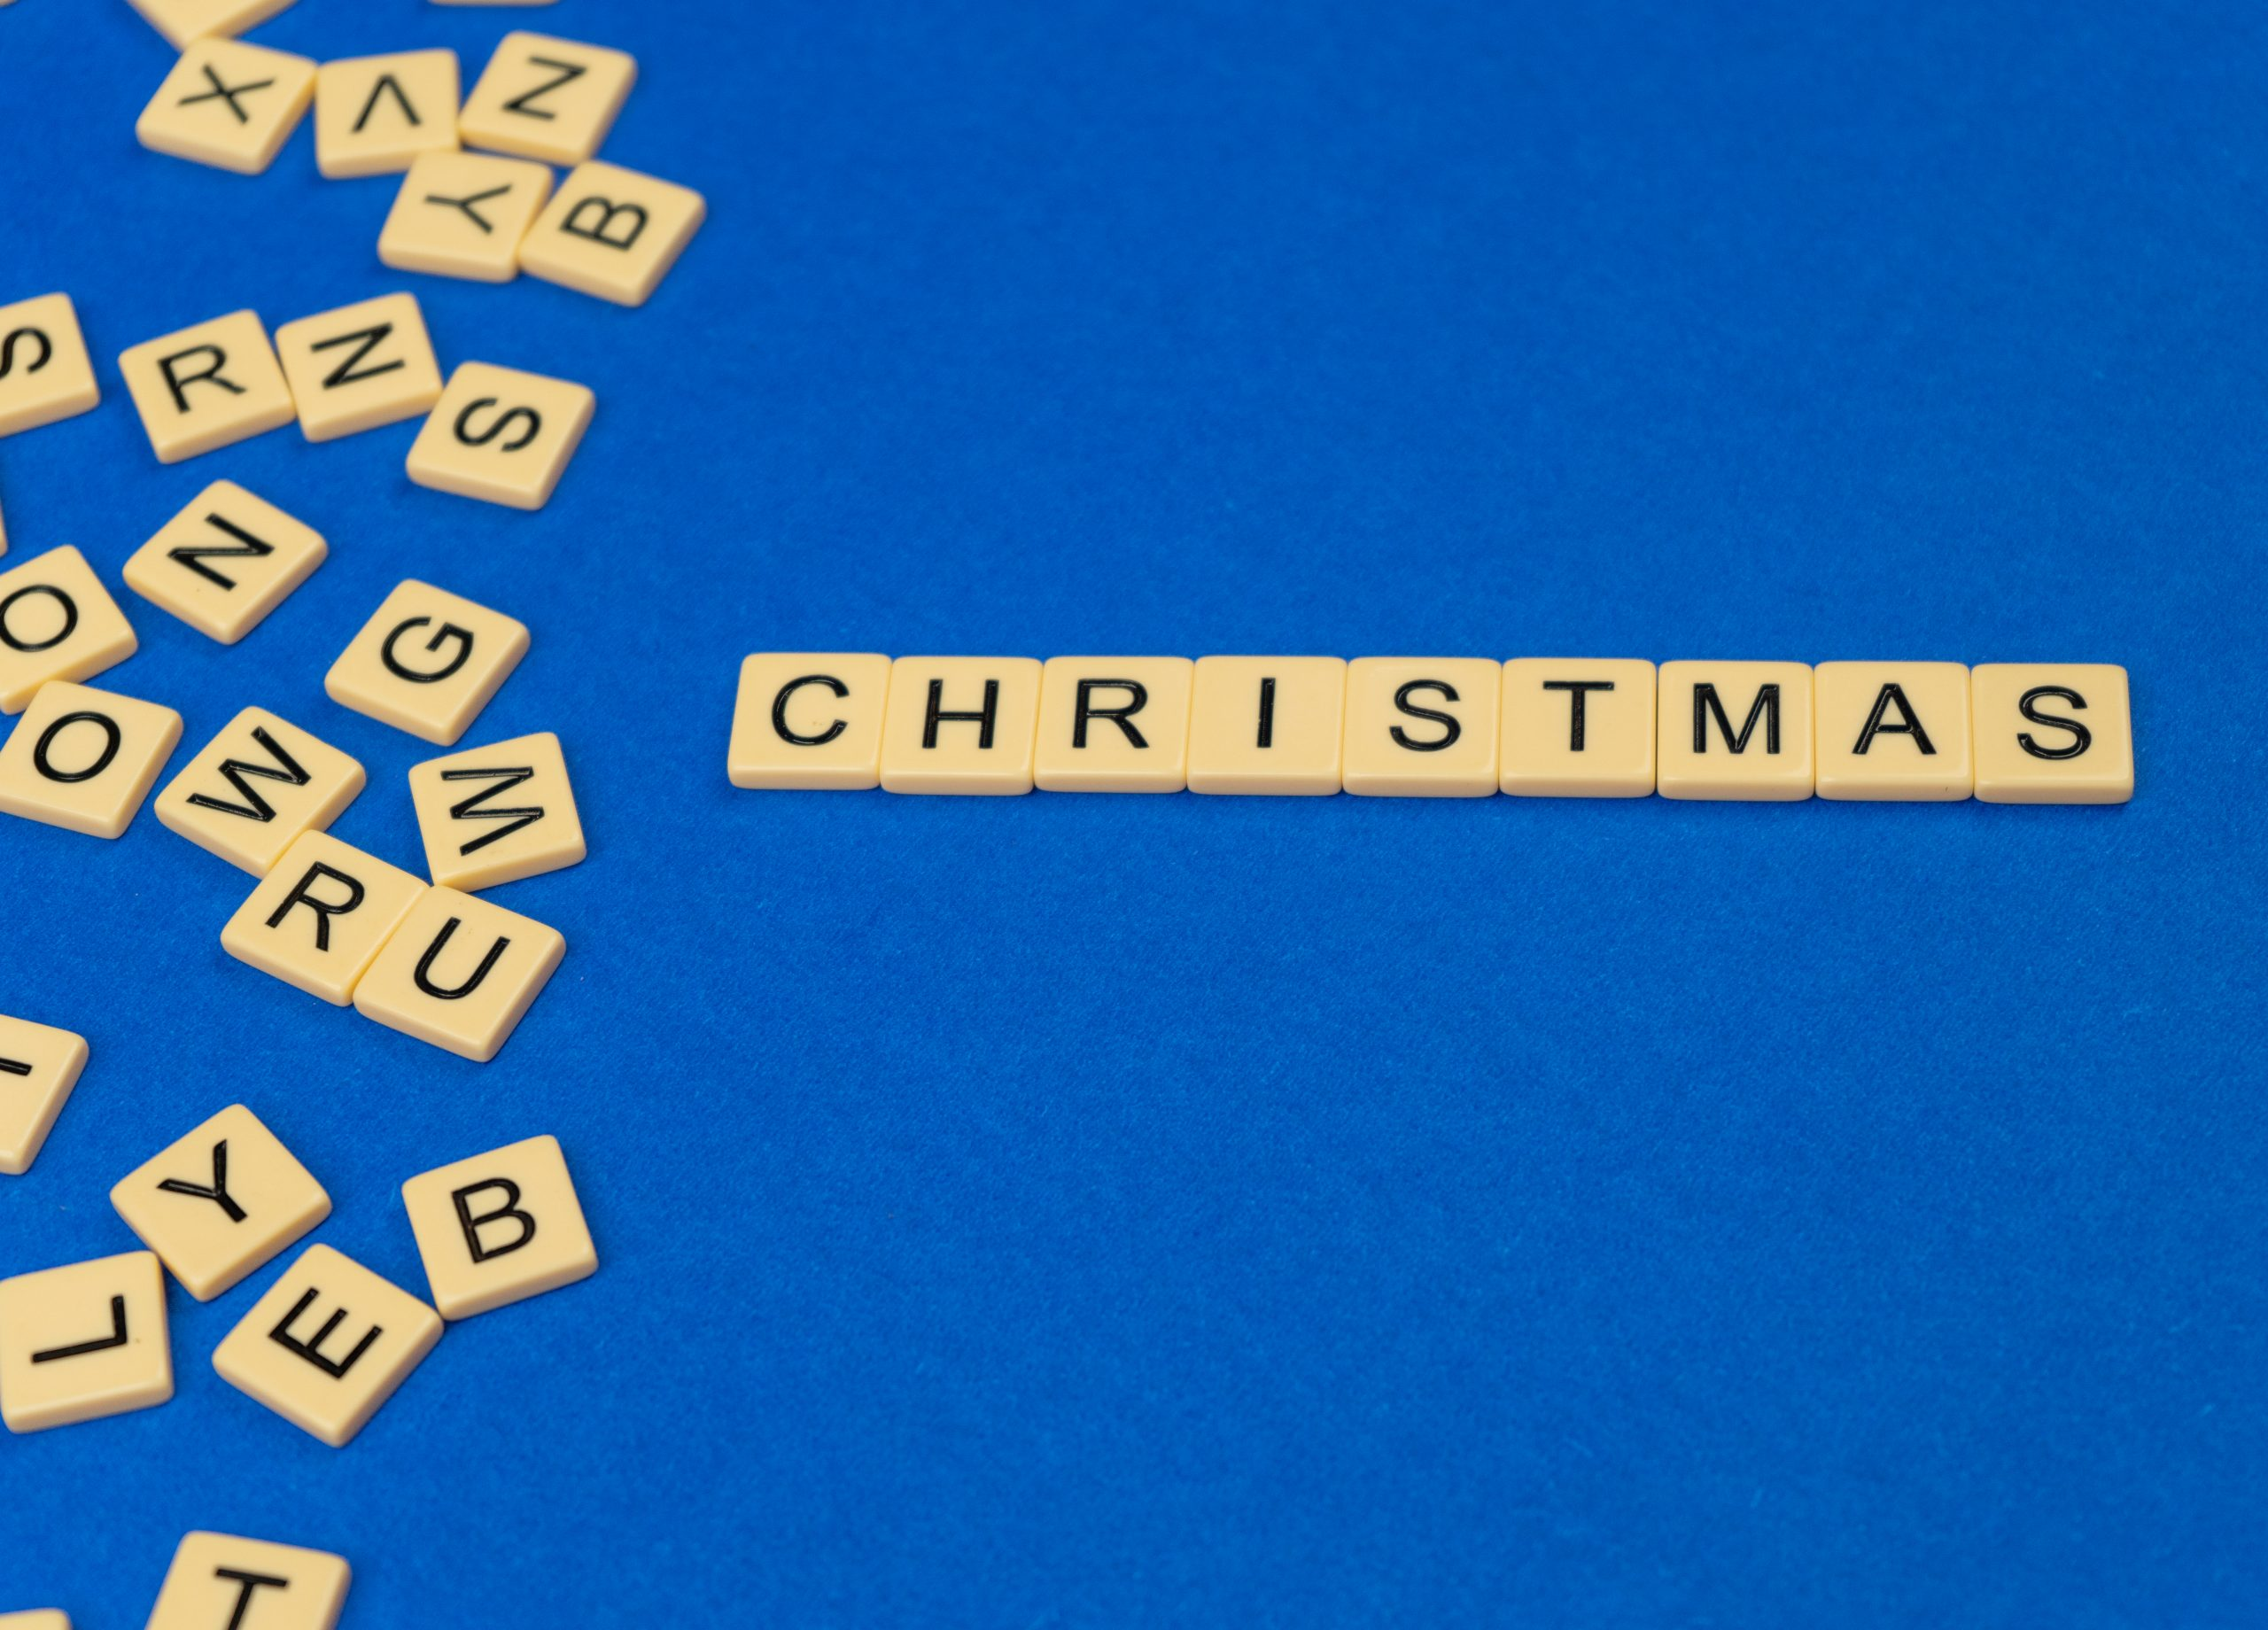 Christmas written with scrabble